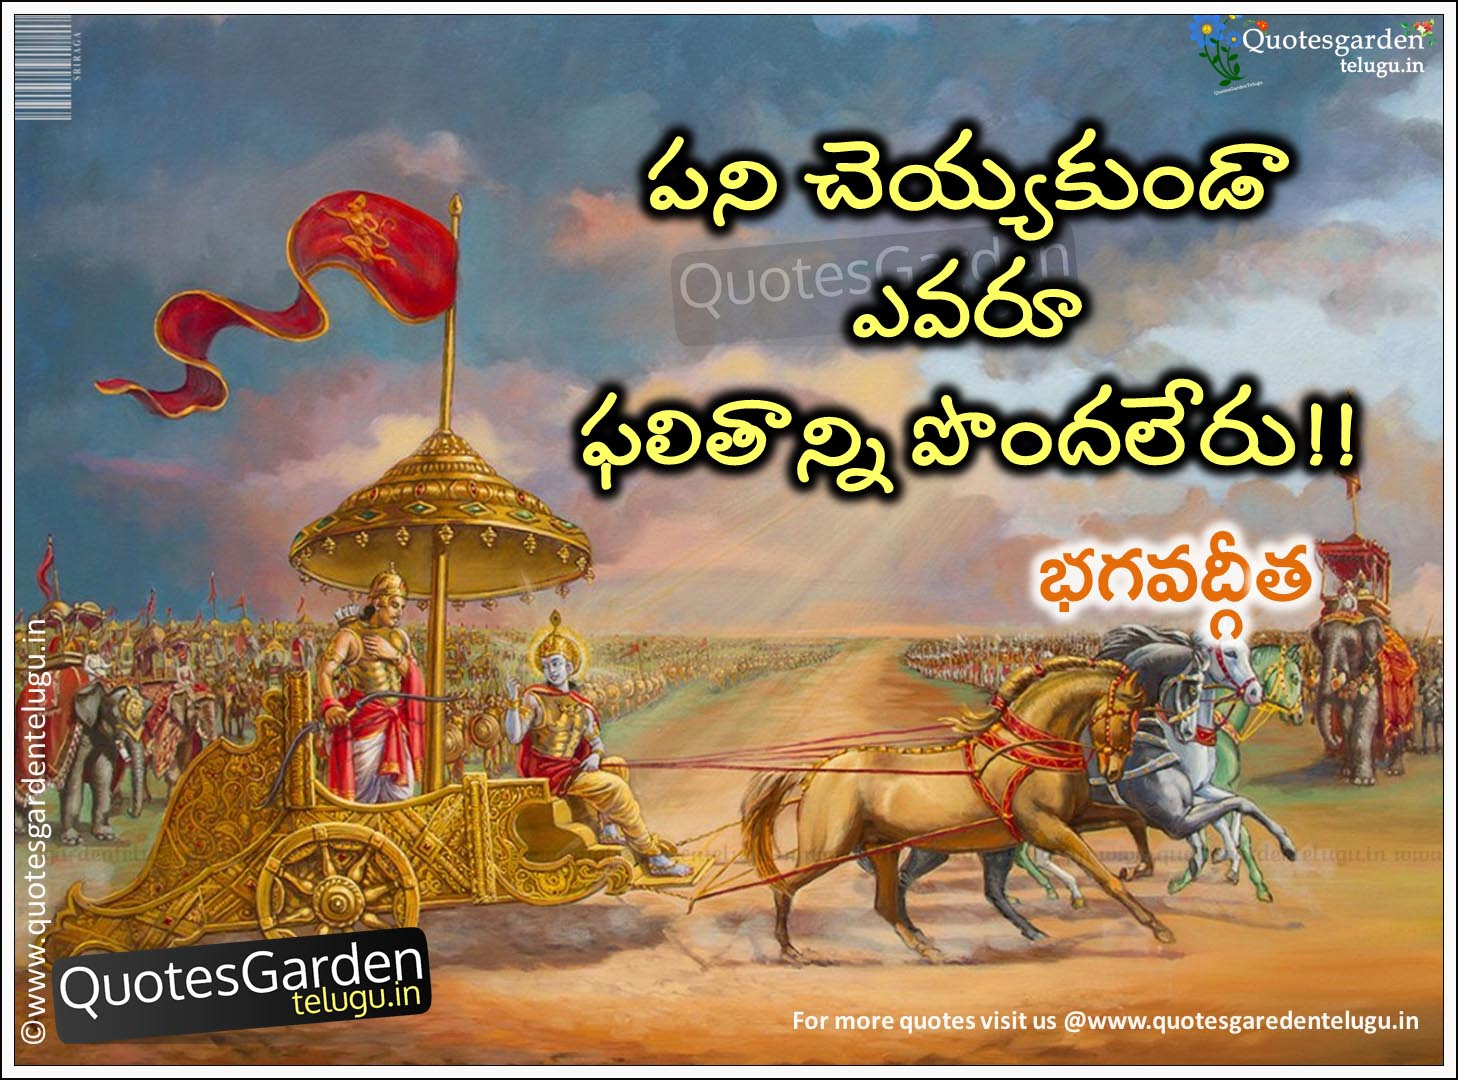 Bhagavad Gita Quotes In English Wallpapers Gita Wallpapers Wallpaper